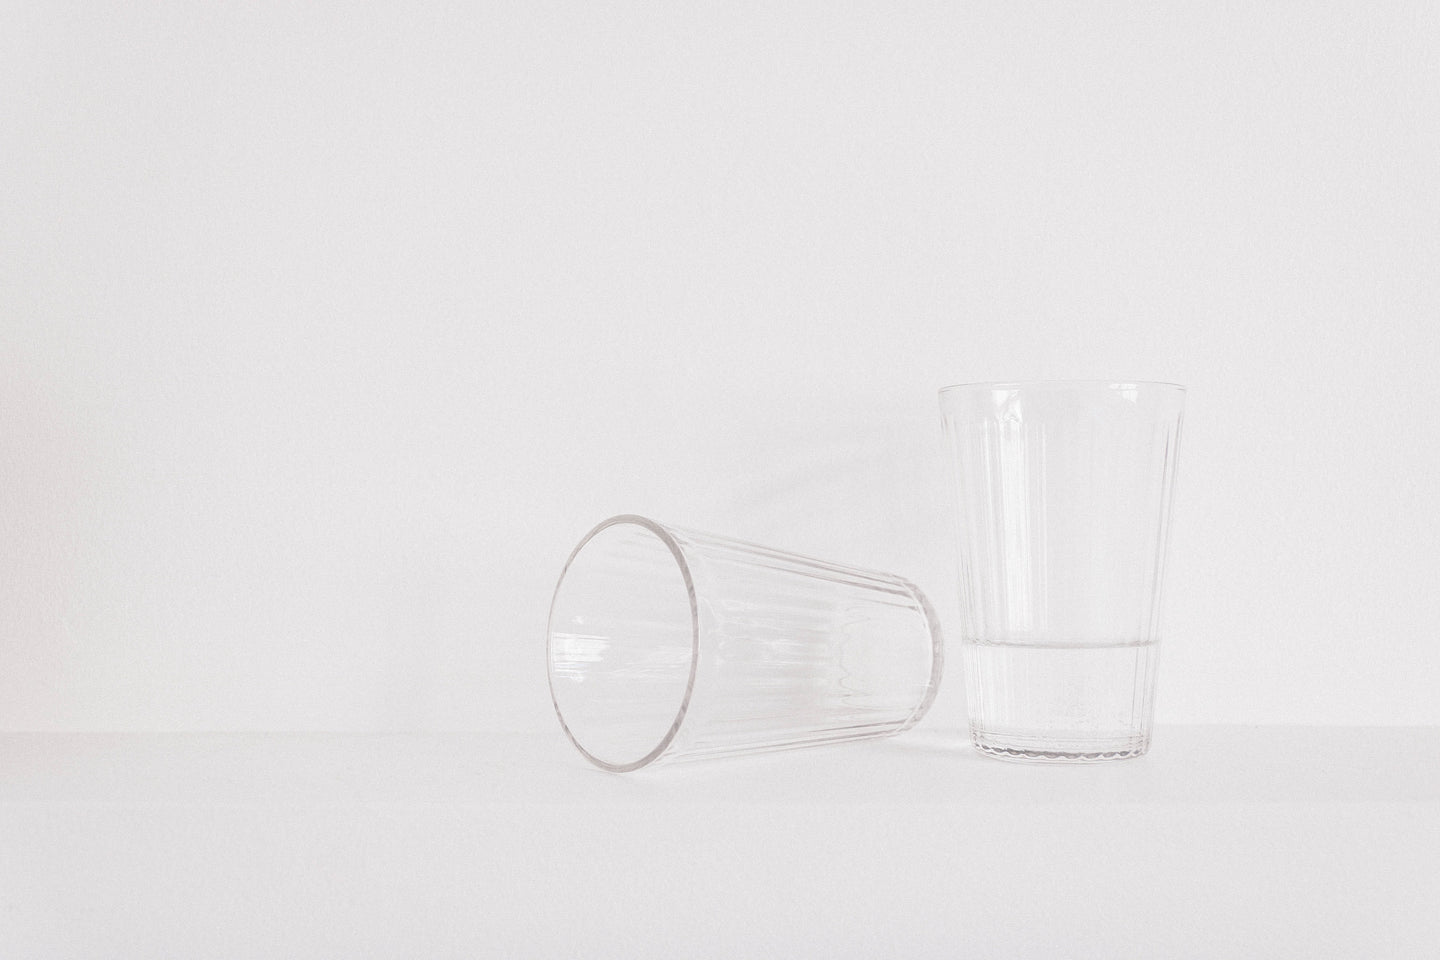 Two clear drinking glass on the table - W-Photographie